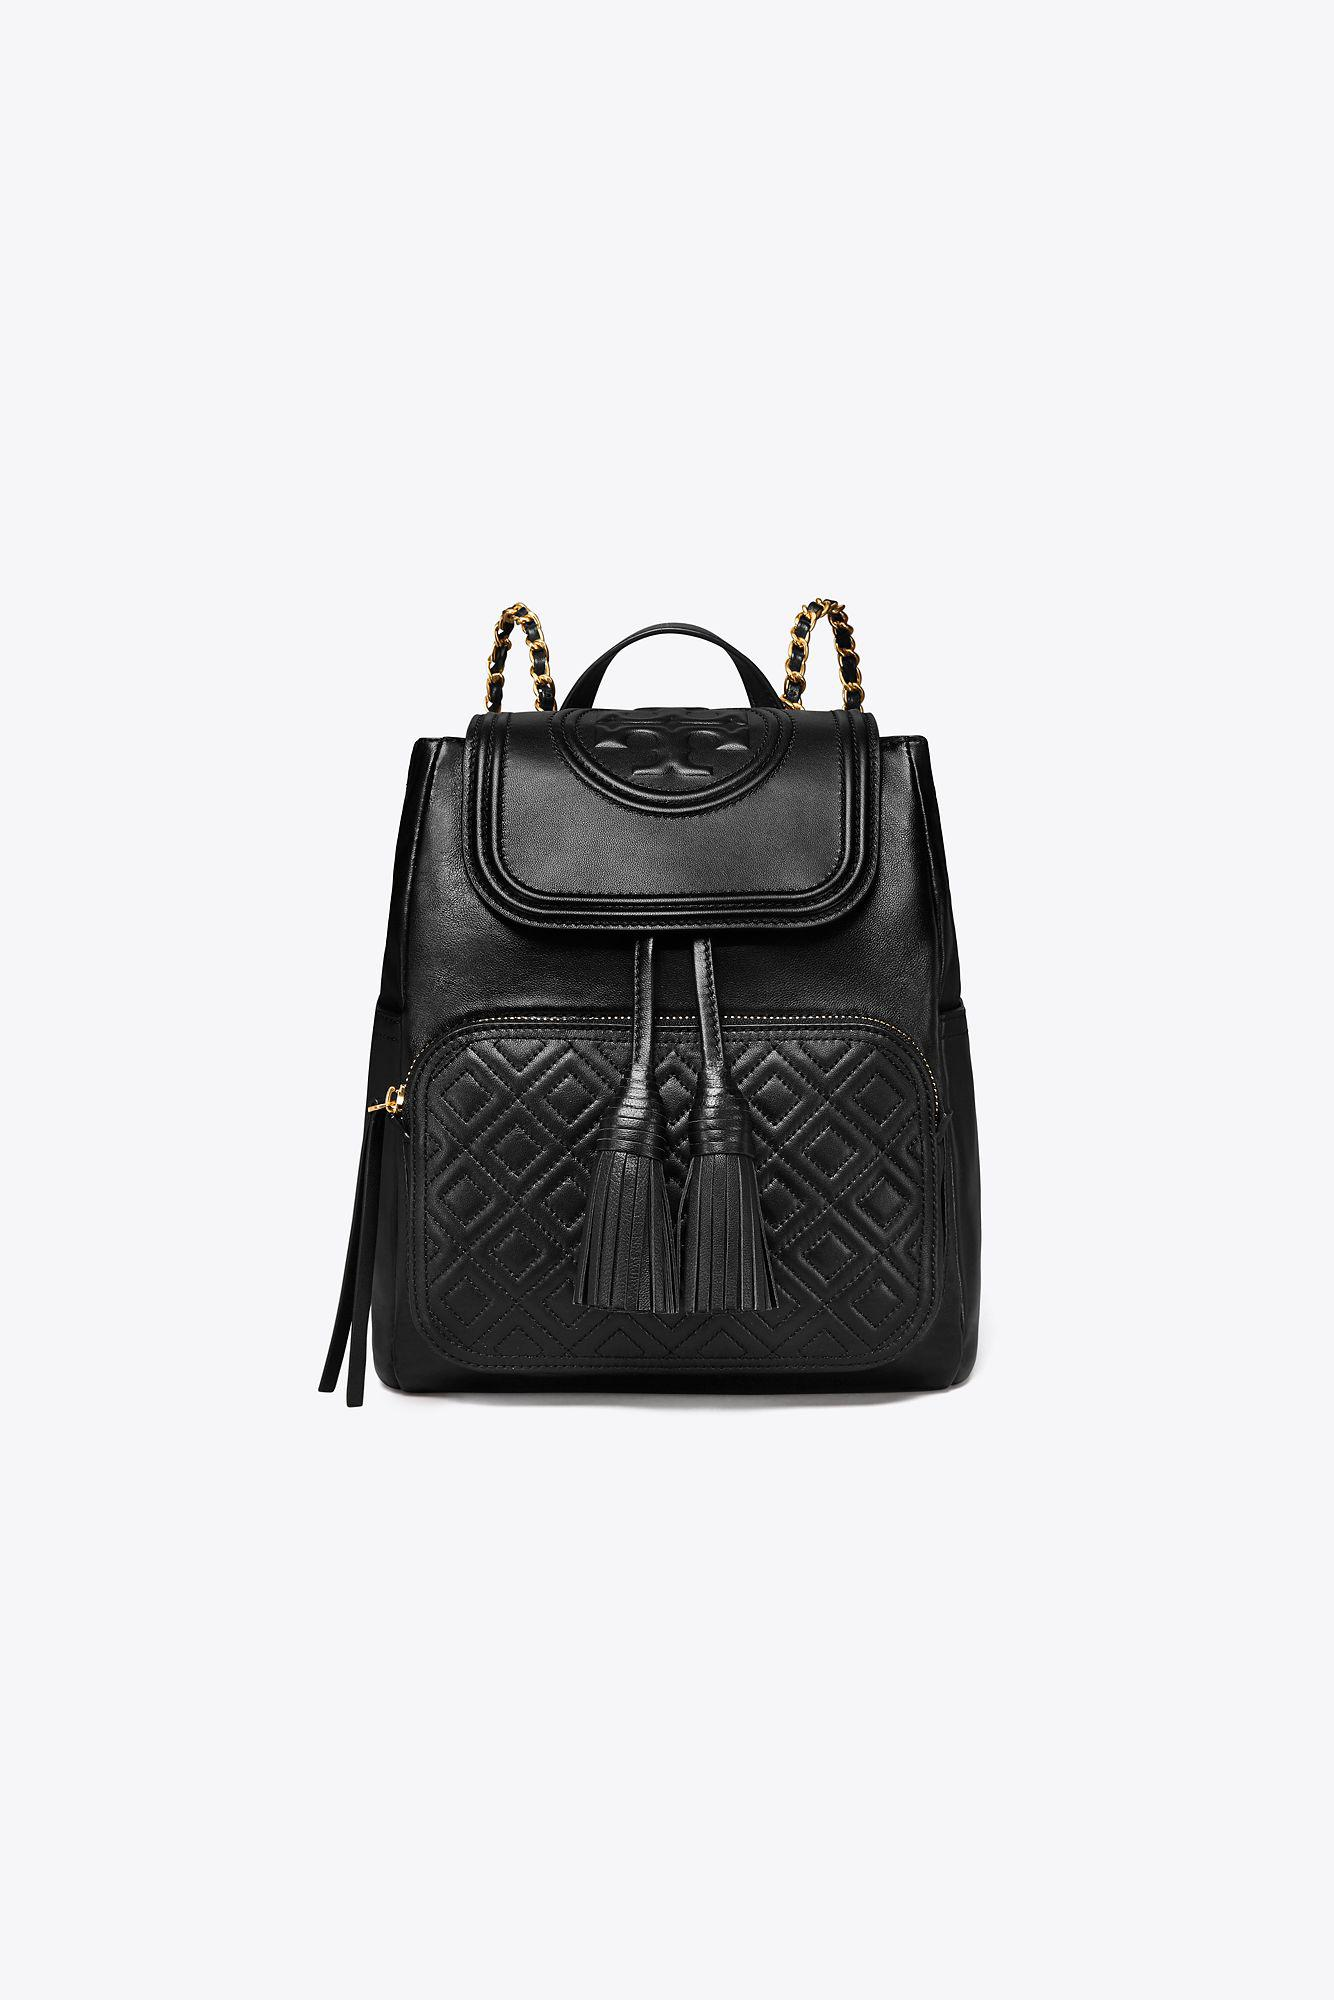 f4352710691 Lyst - Tory Burch Fleming Backpack in Black - Save 36%